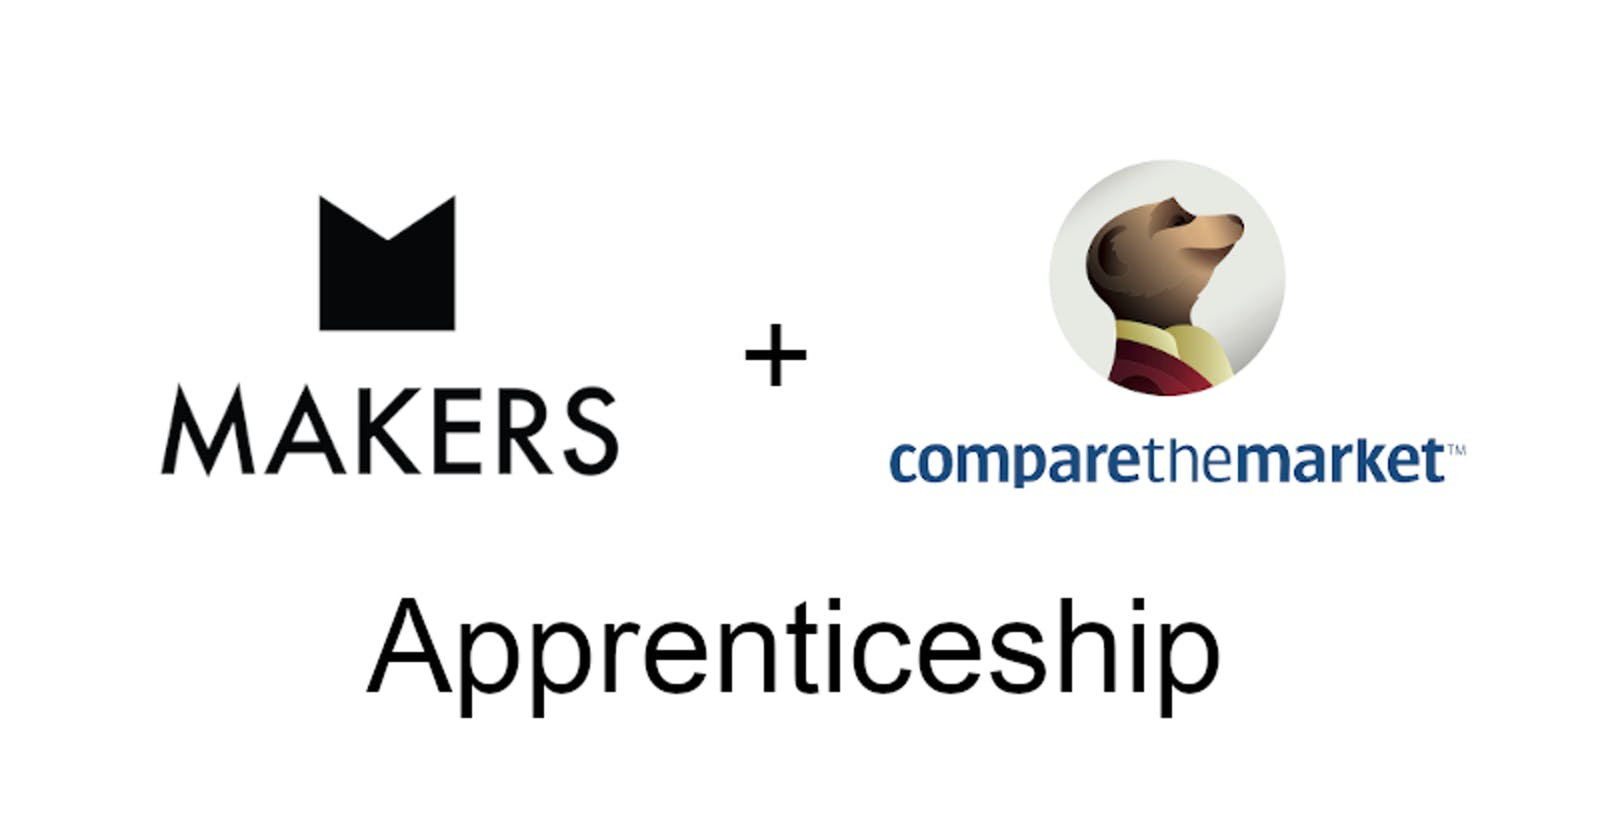 Makers Apprenticeship Boot Camp @ComparetheMarket 🐒 | My Experience 🤔